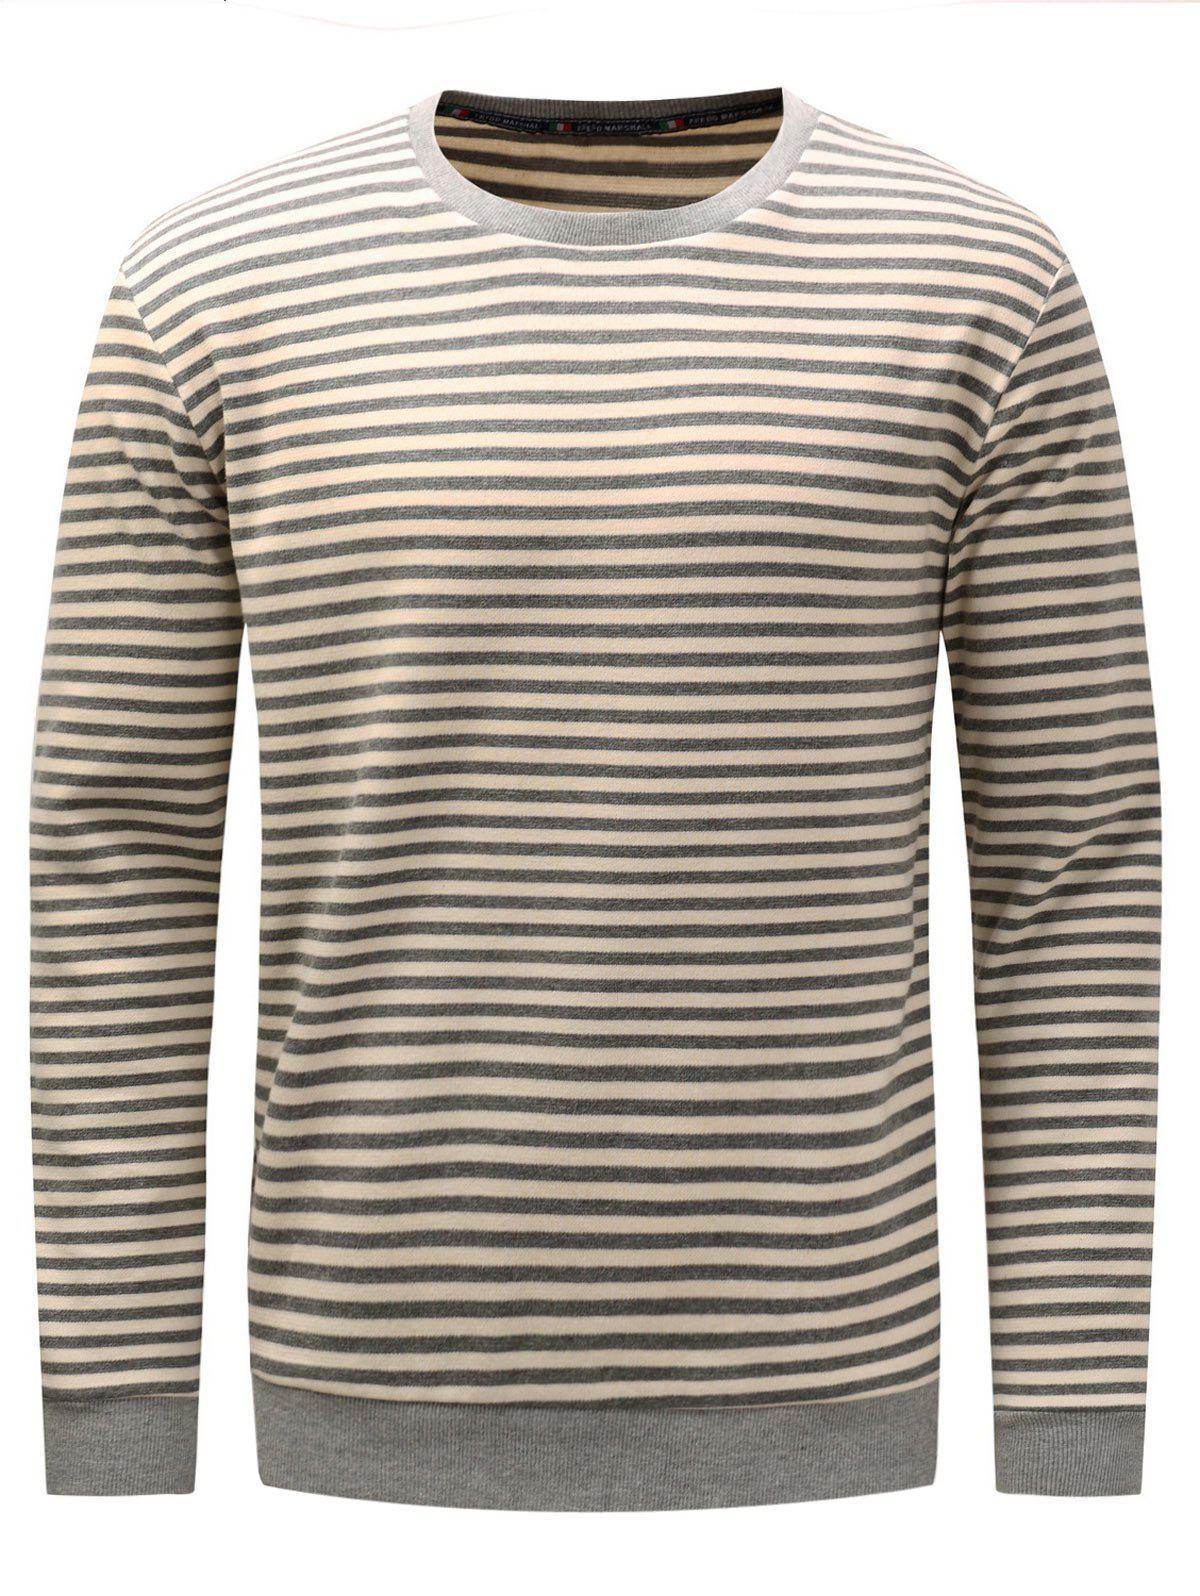 Long Sleeve Stripe Pullover Sweatshirt - GRAY XL